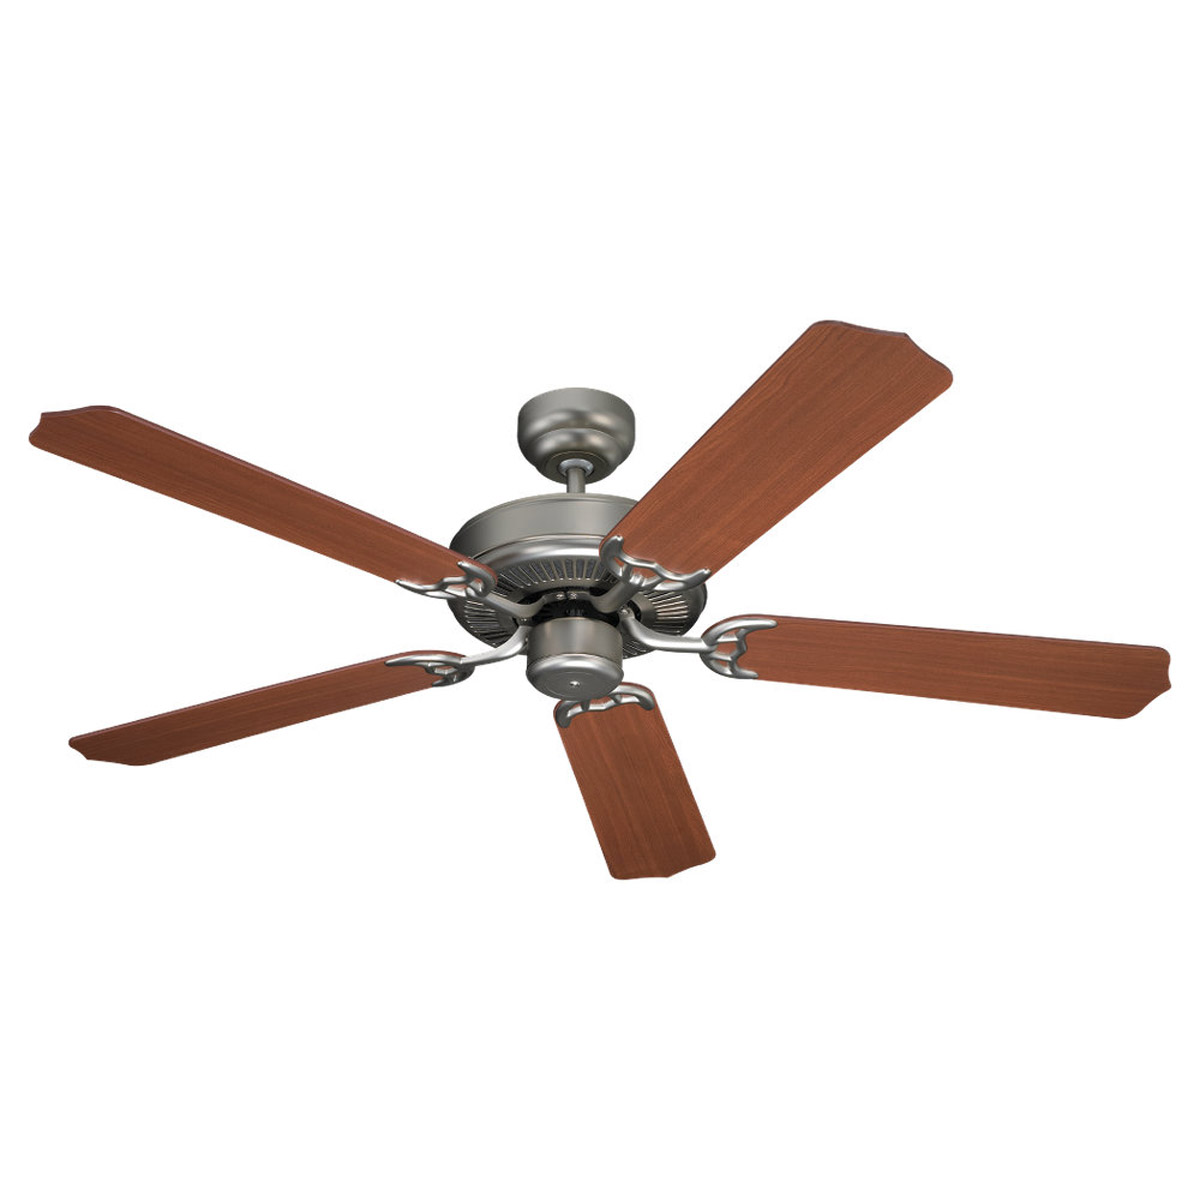 Sea Gull Lighting Quality Max Indoor Ceiling Fan in Golden Pewter 15030-853